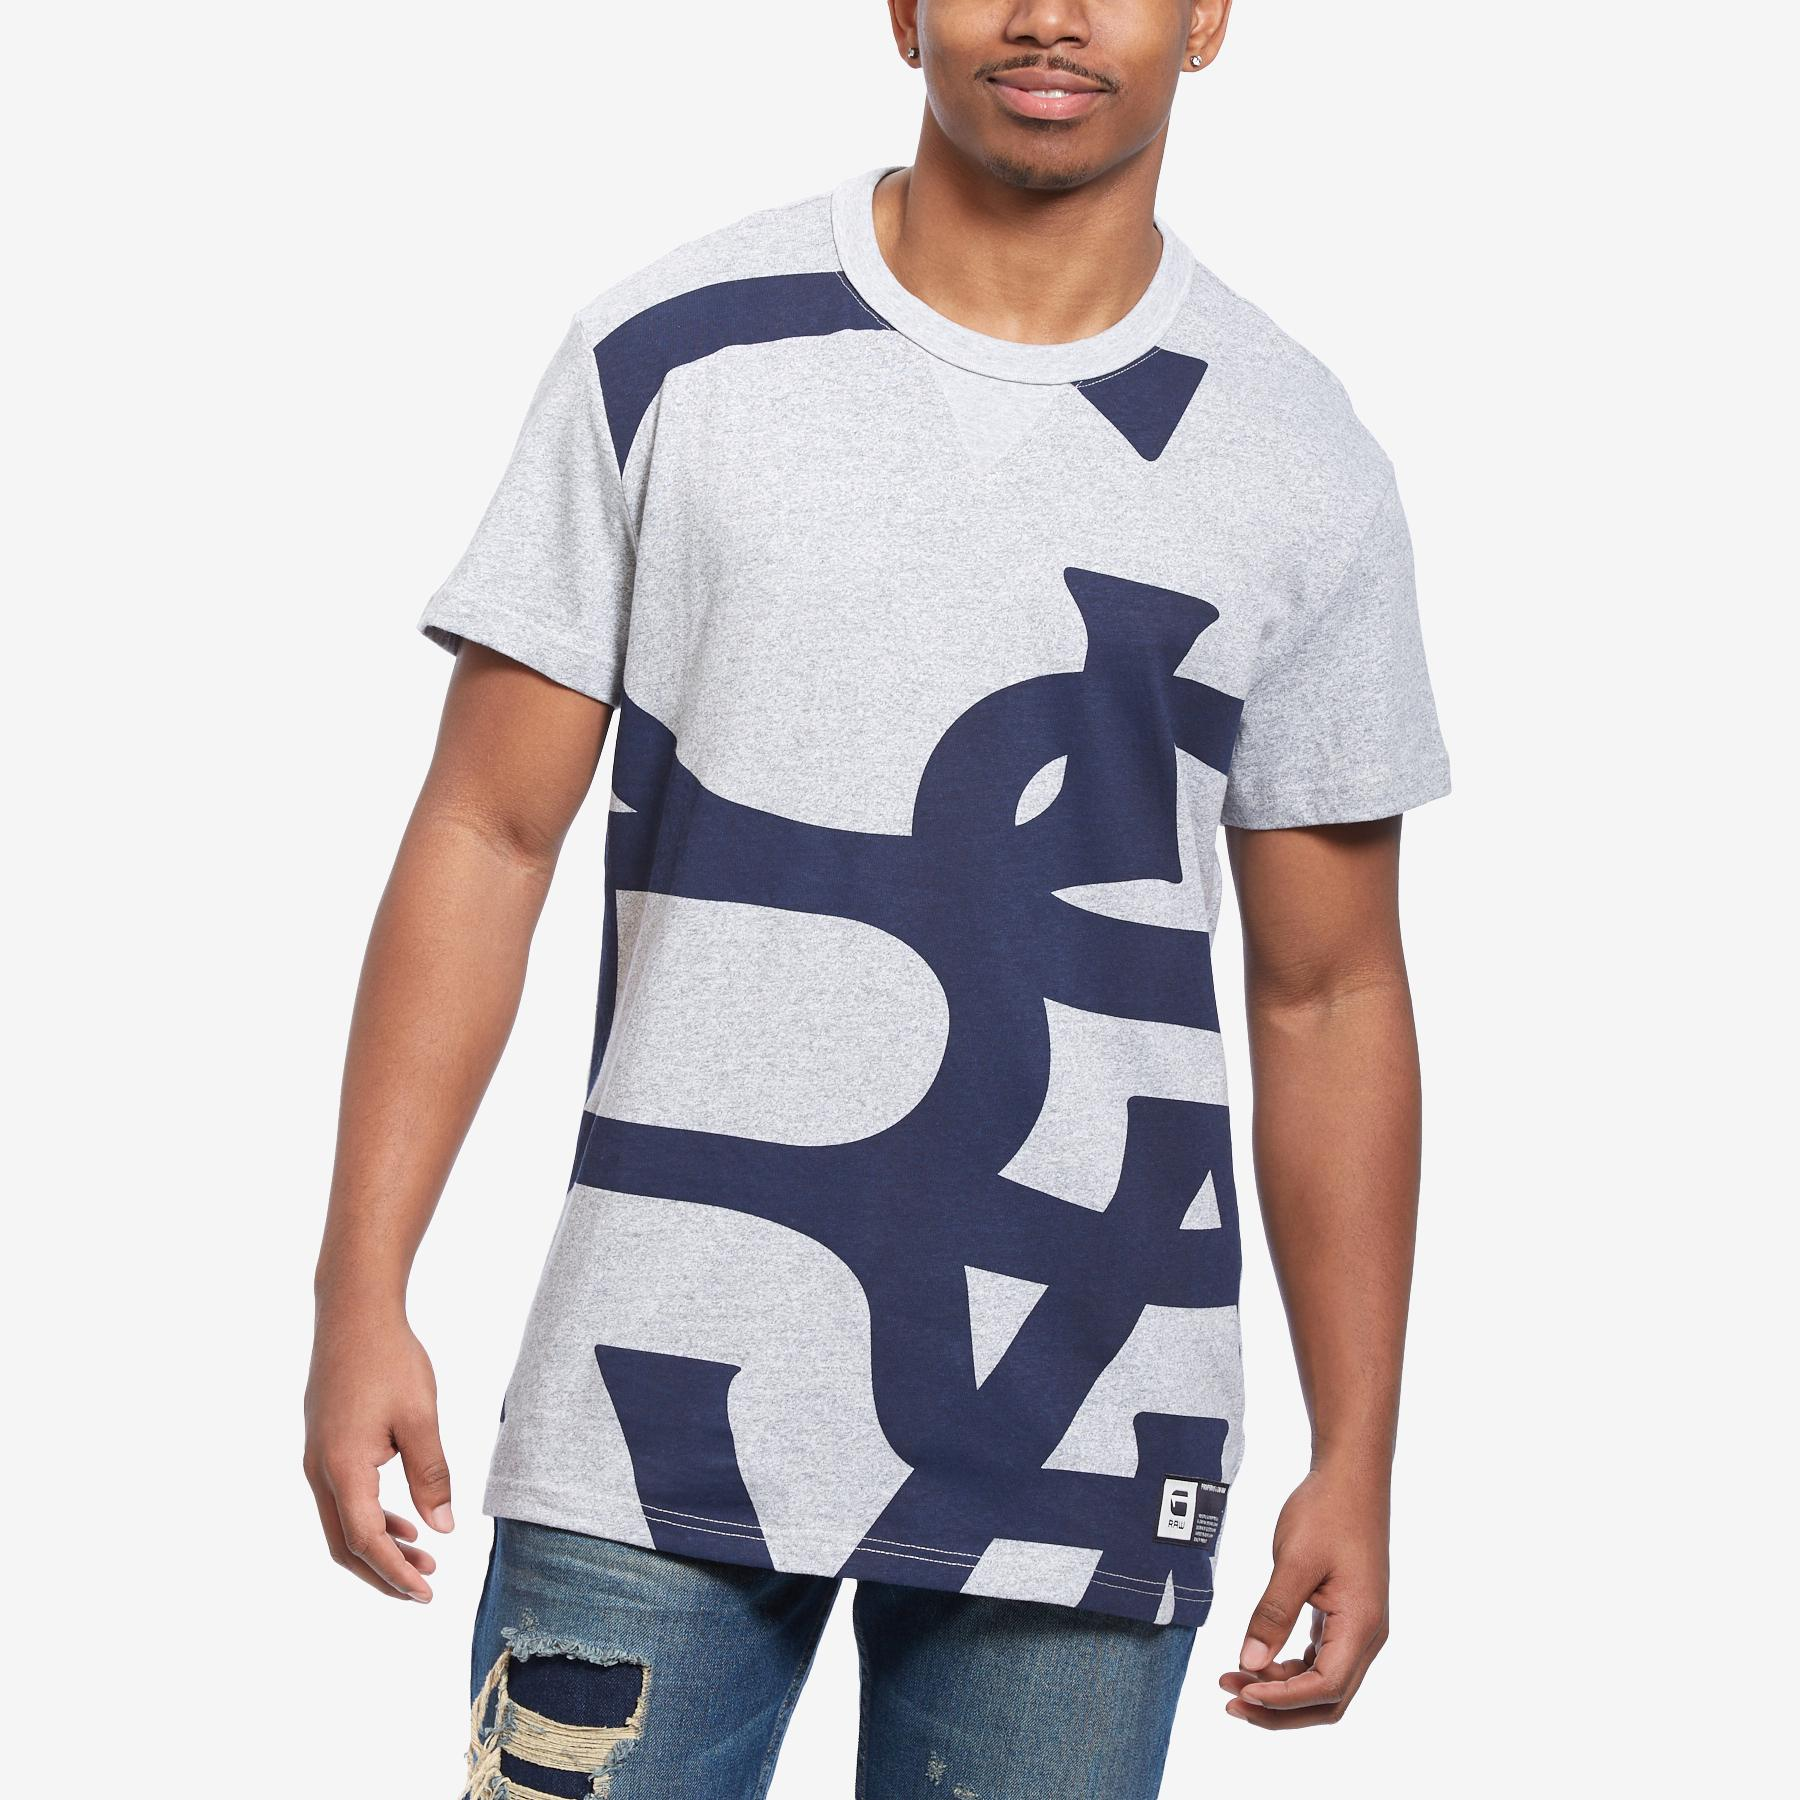 Men's Graphic 11 Loose Top